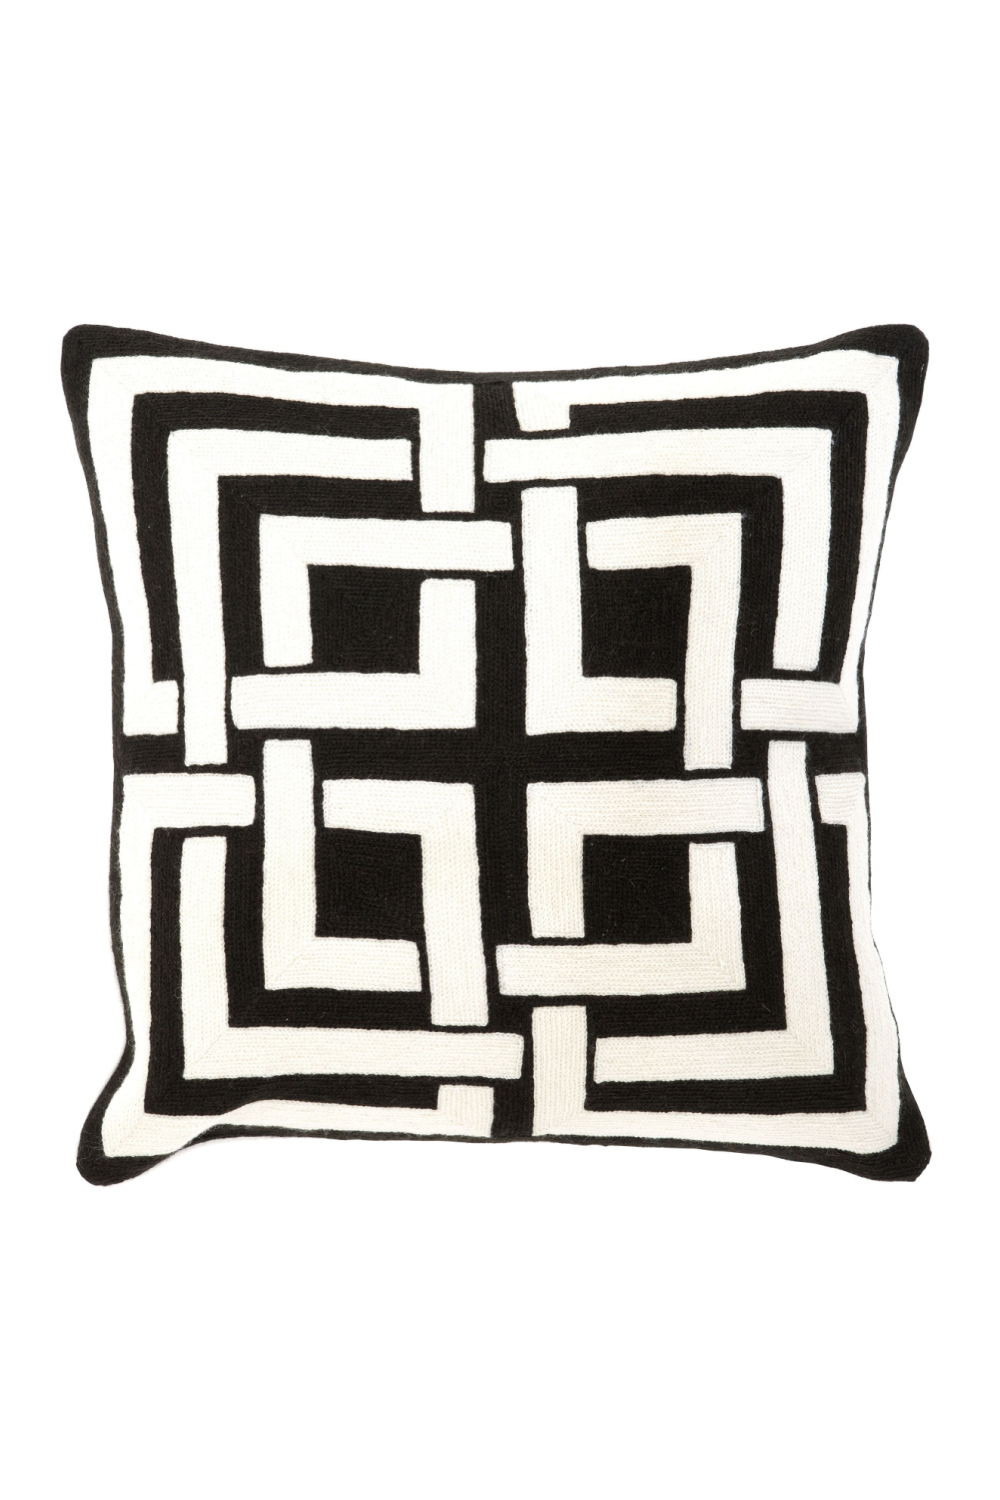 Black and White Pillow | Eichholtz Blakes | #1 Eichholtz Retailer